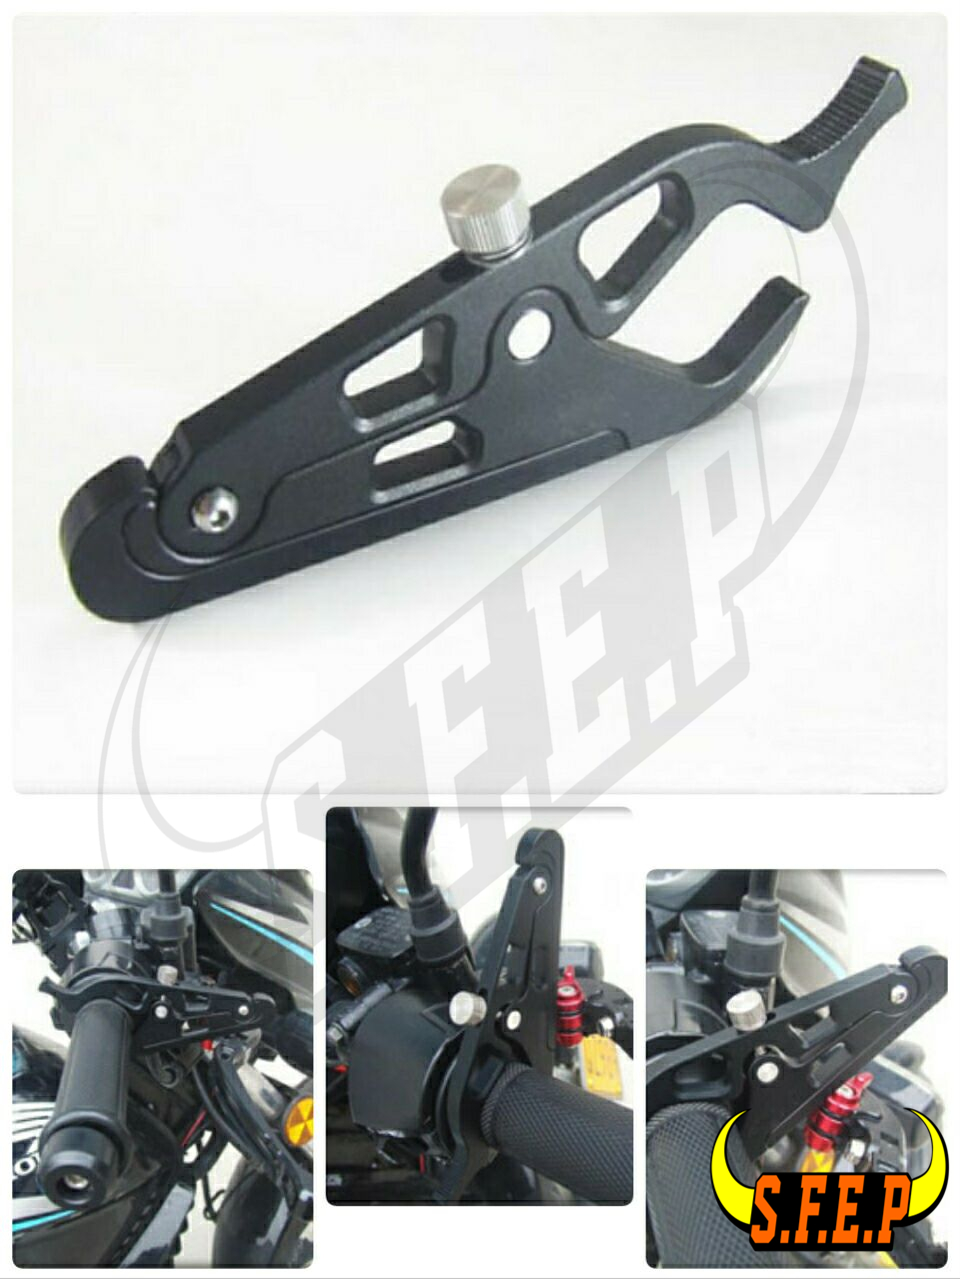 Motorcycle Cruise Lever : Universal motorcycle cruise control throttle lock system